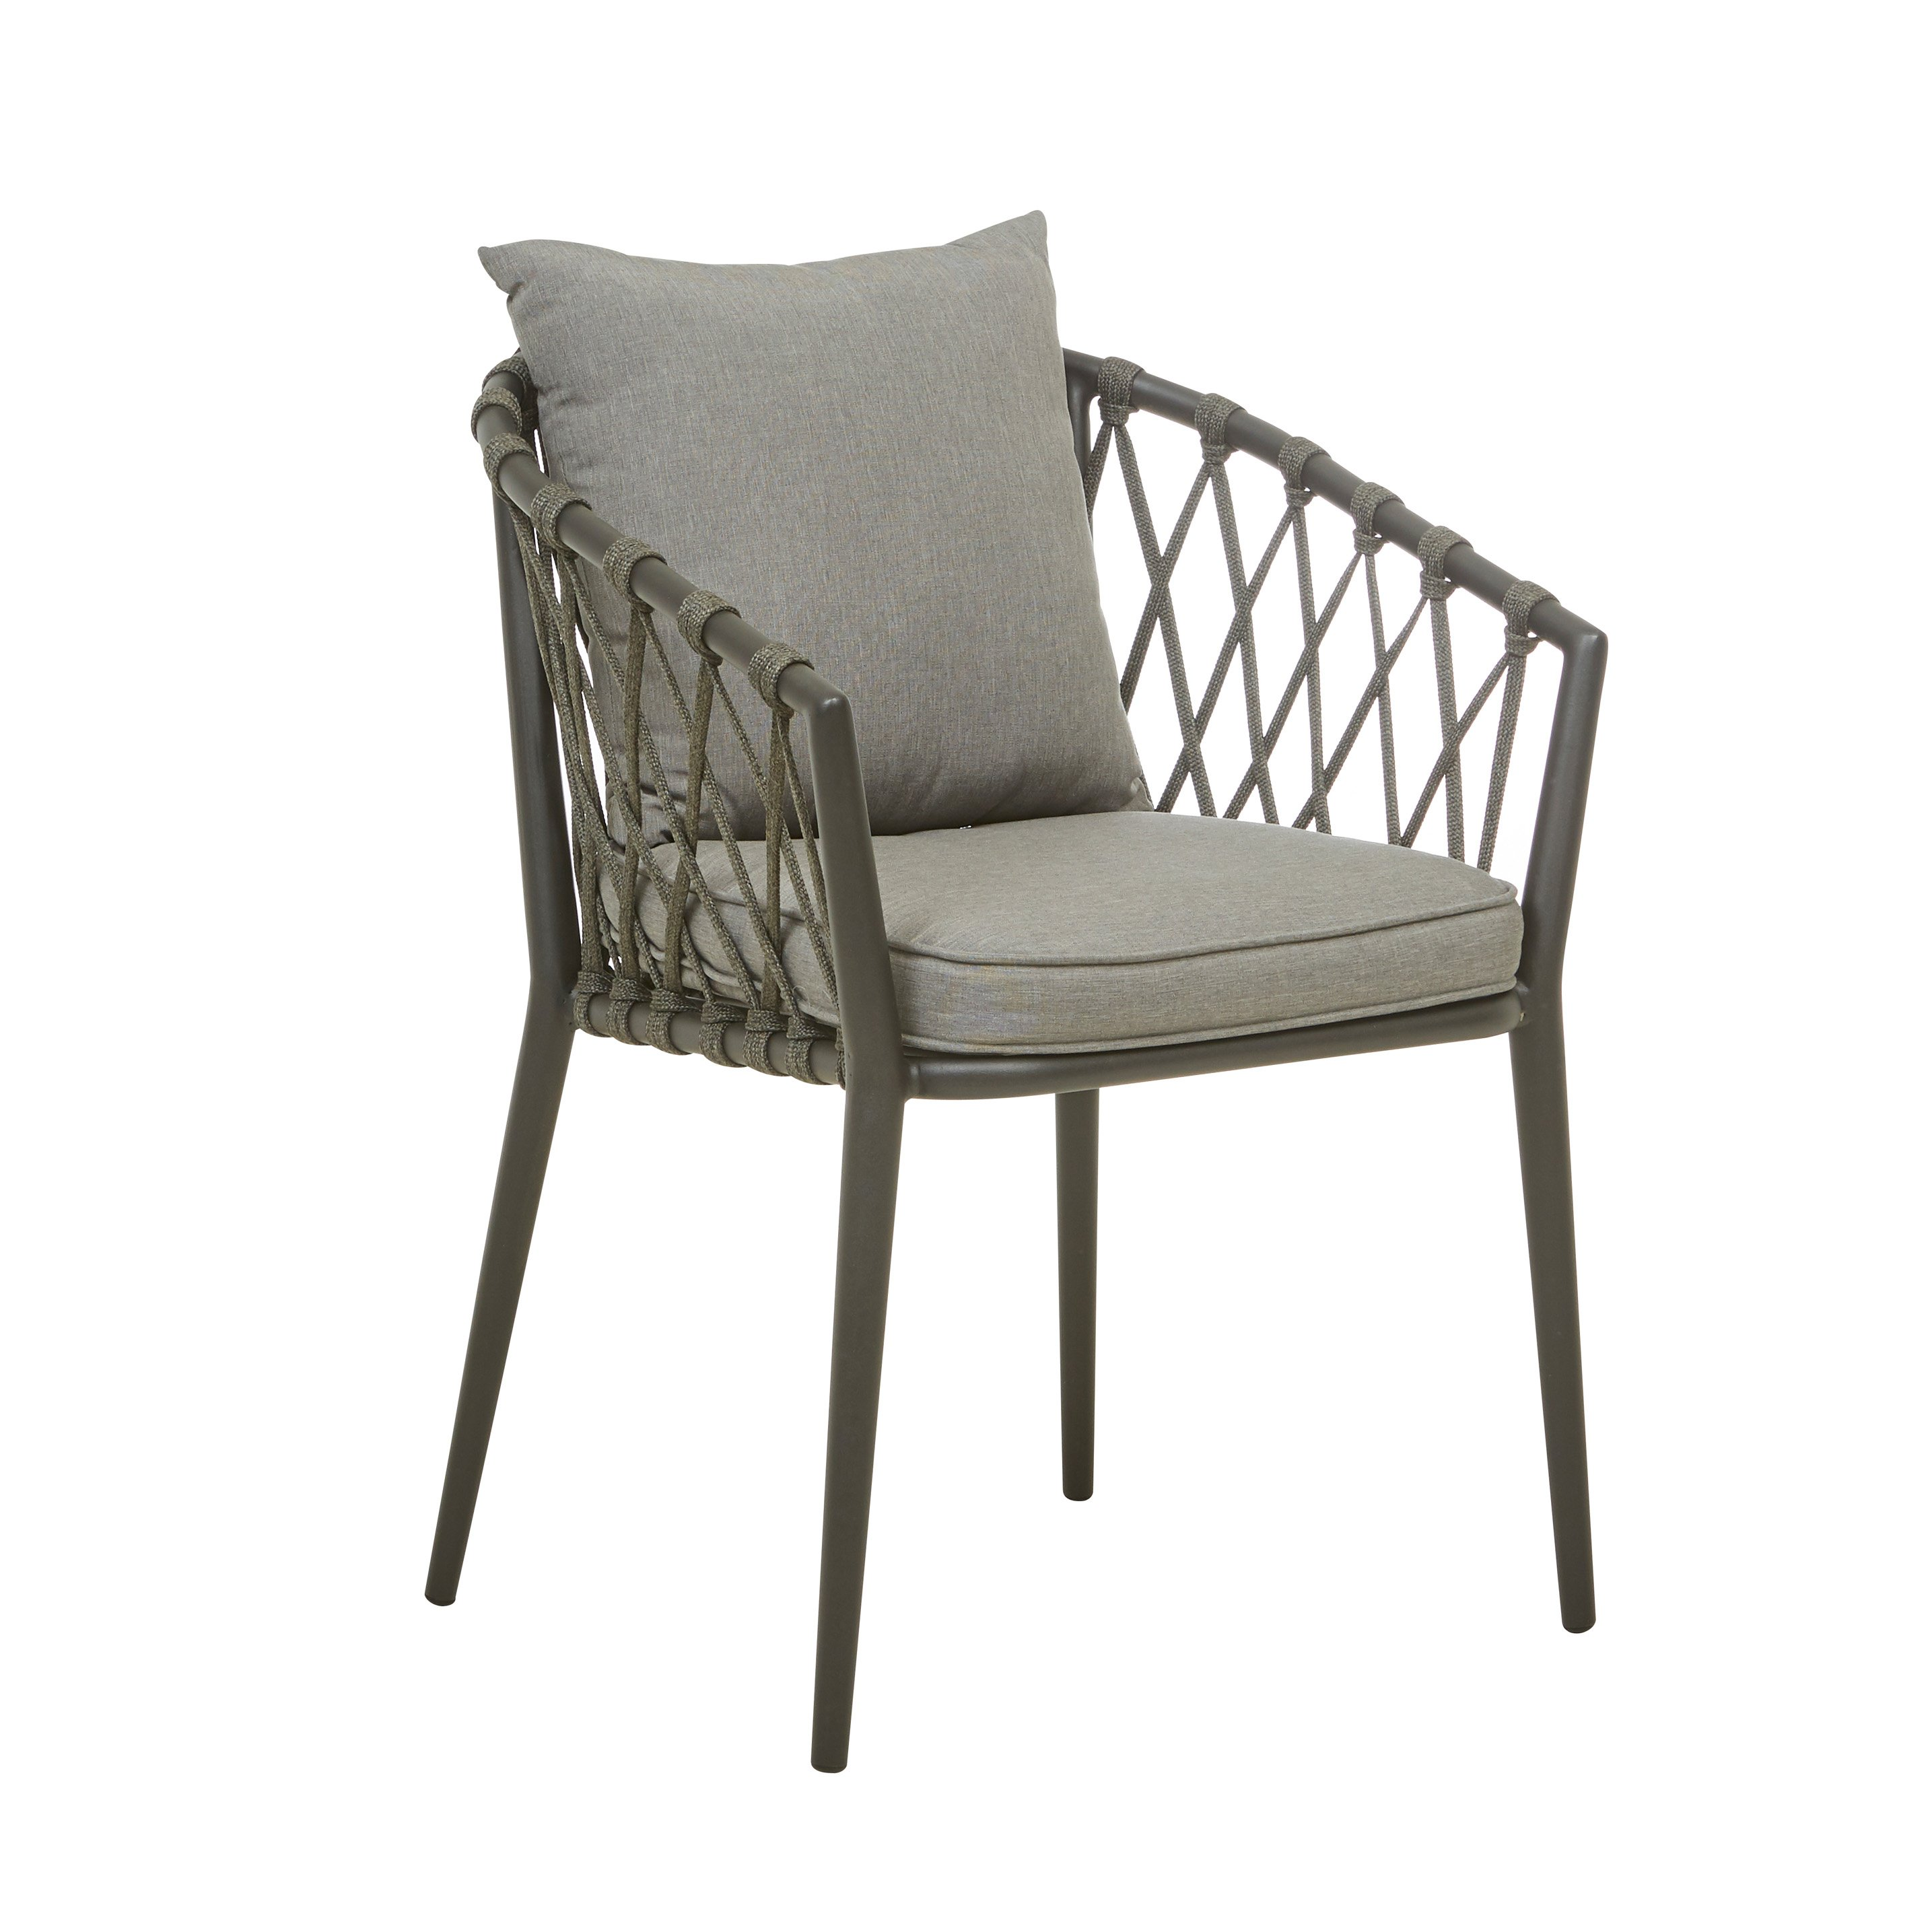 Furniture Hero-Images Dining-Chairs-Benches-and-Stools maui-arm-dining-chair-02